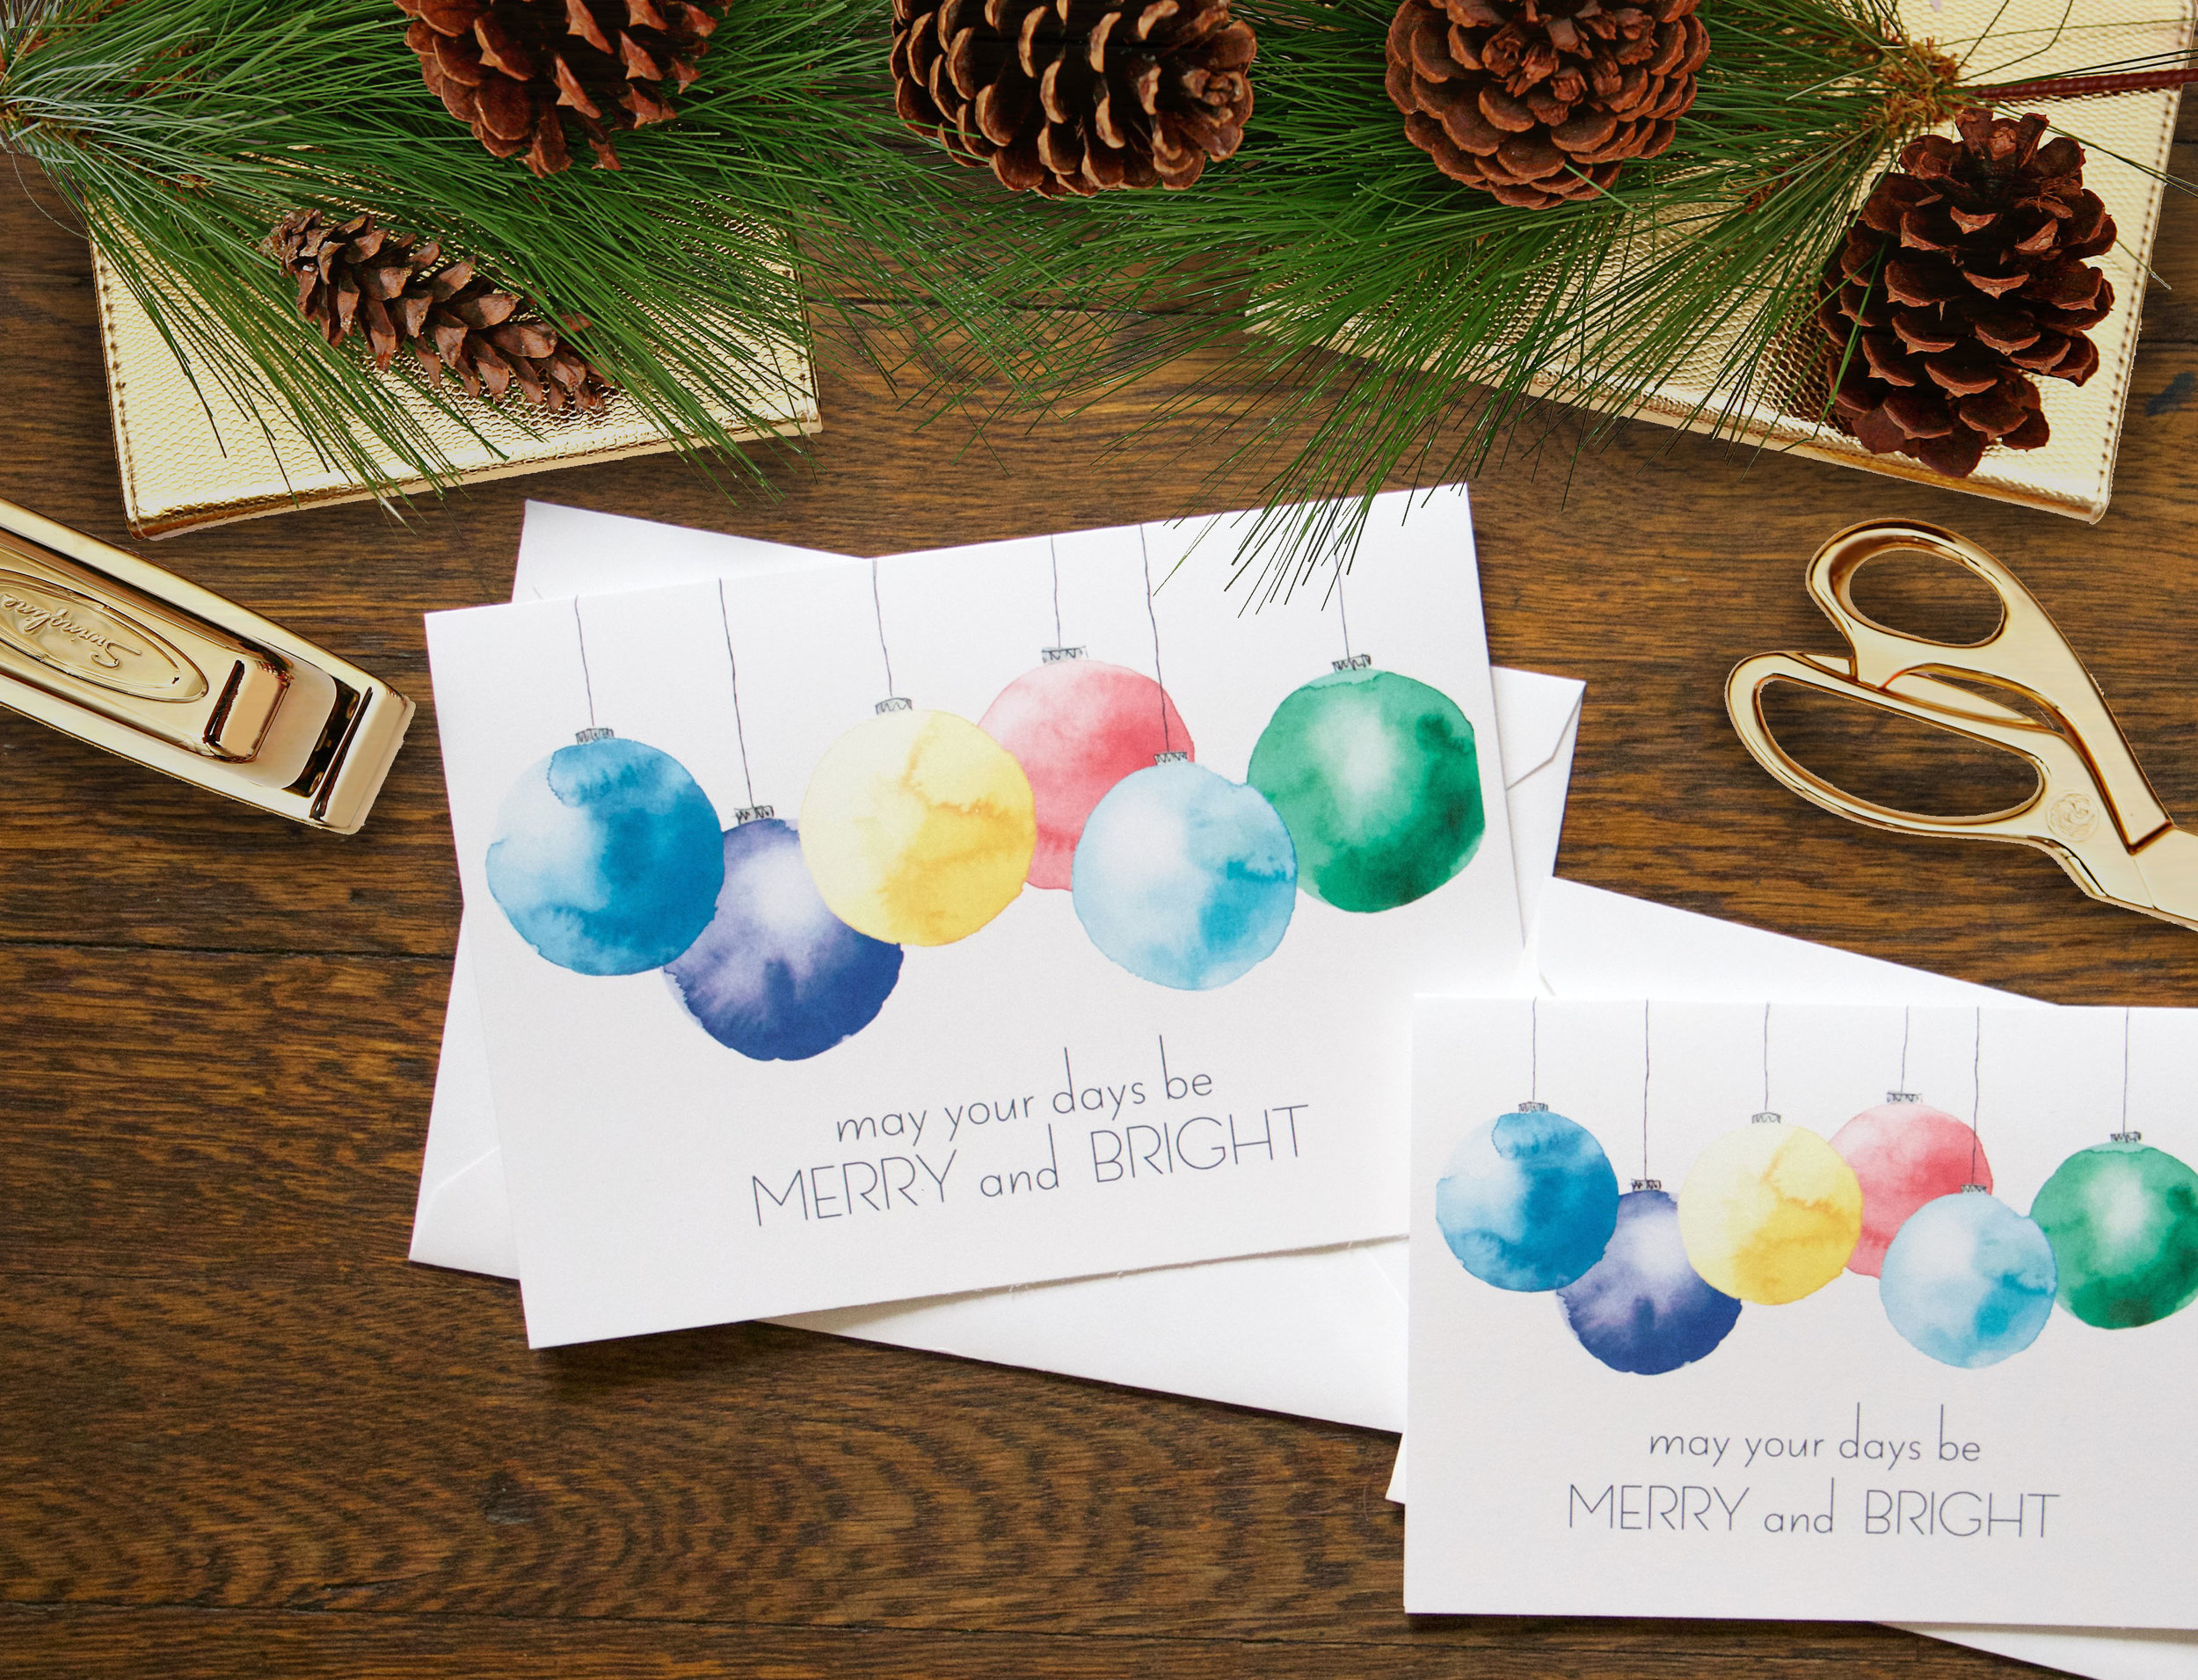 Merry and Bright Stationery